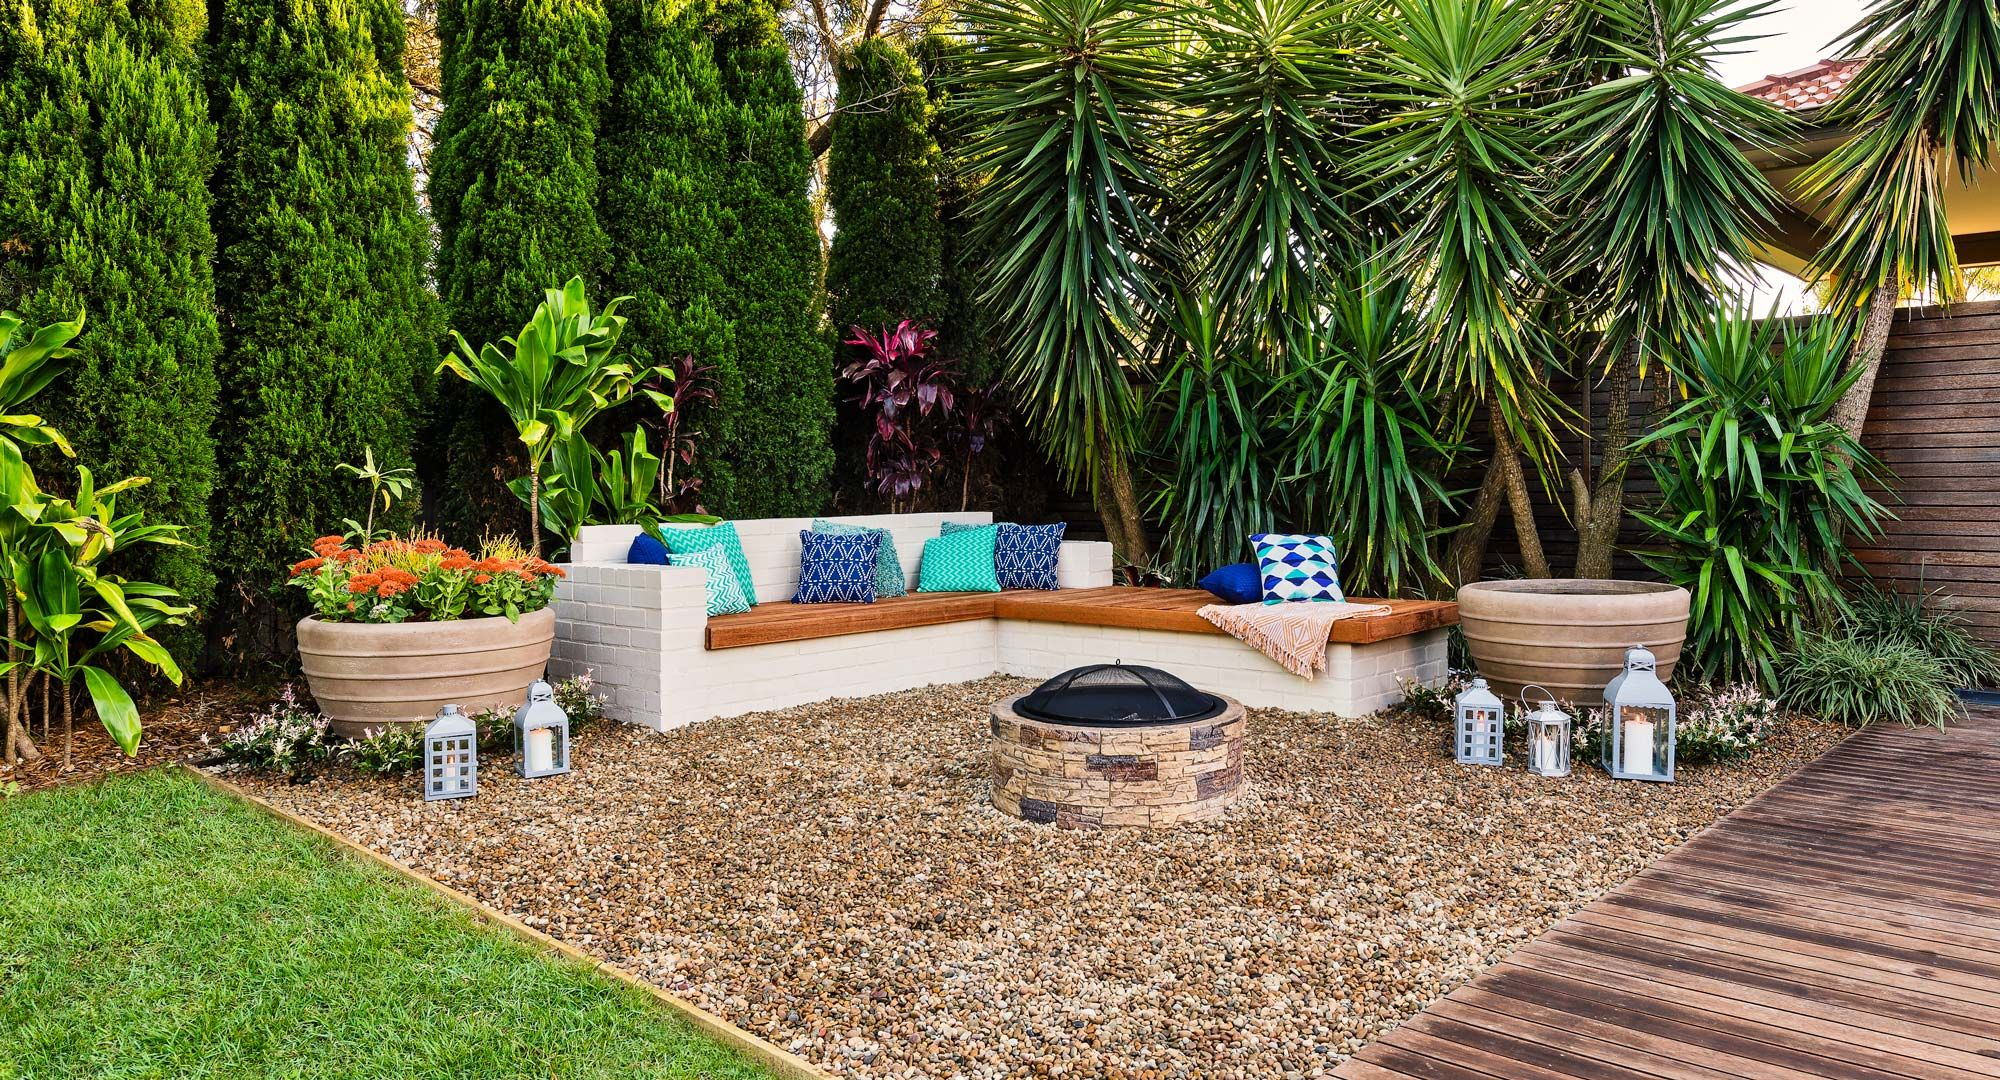 7 Popular Siding Materials To Consider: Image Result For Sunken Seating Fountain